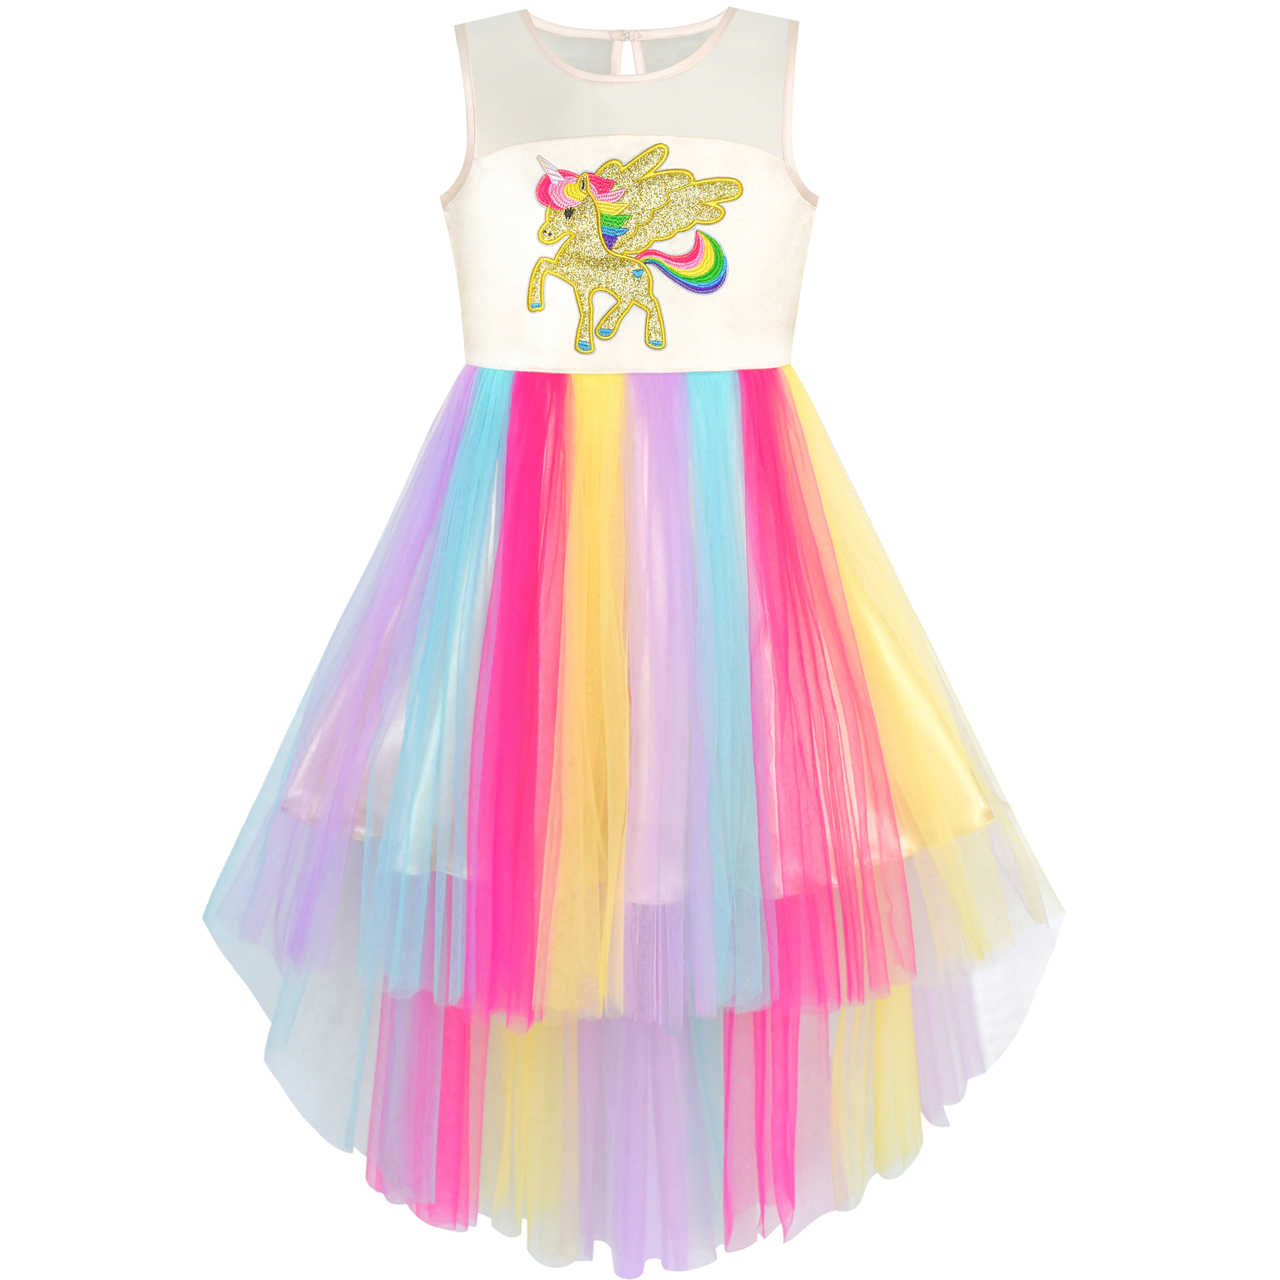 803945603bcc Girls Dress Embroidered Unicorn Rainbow Halloween Costume 2019 Summer  Princess Wedding Party Dresses Children Clothes Pageant